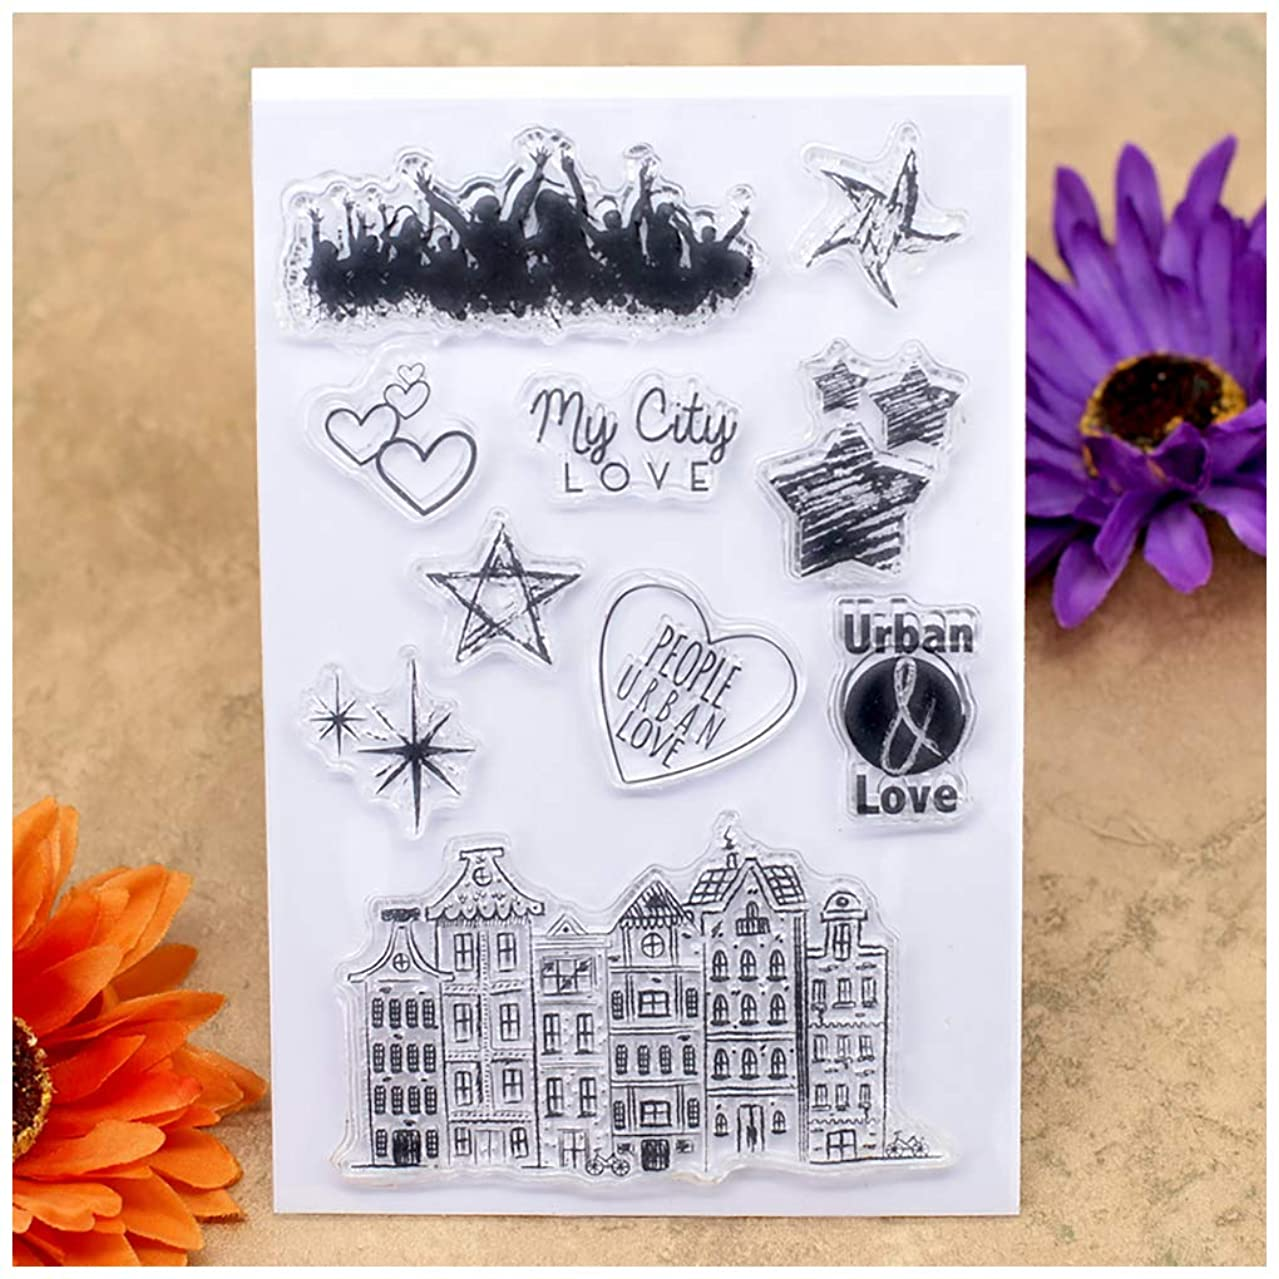 Kwan Crafts My City Love People Urban Love Heart Star Clear Stamps for Card Making Decoration and DIY Scrapbooking